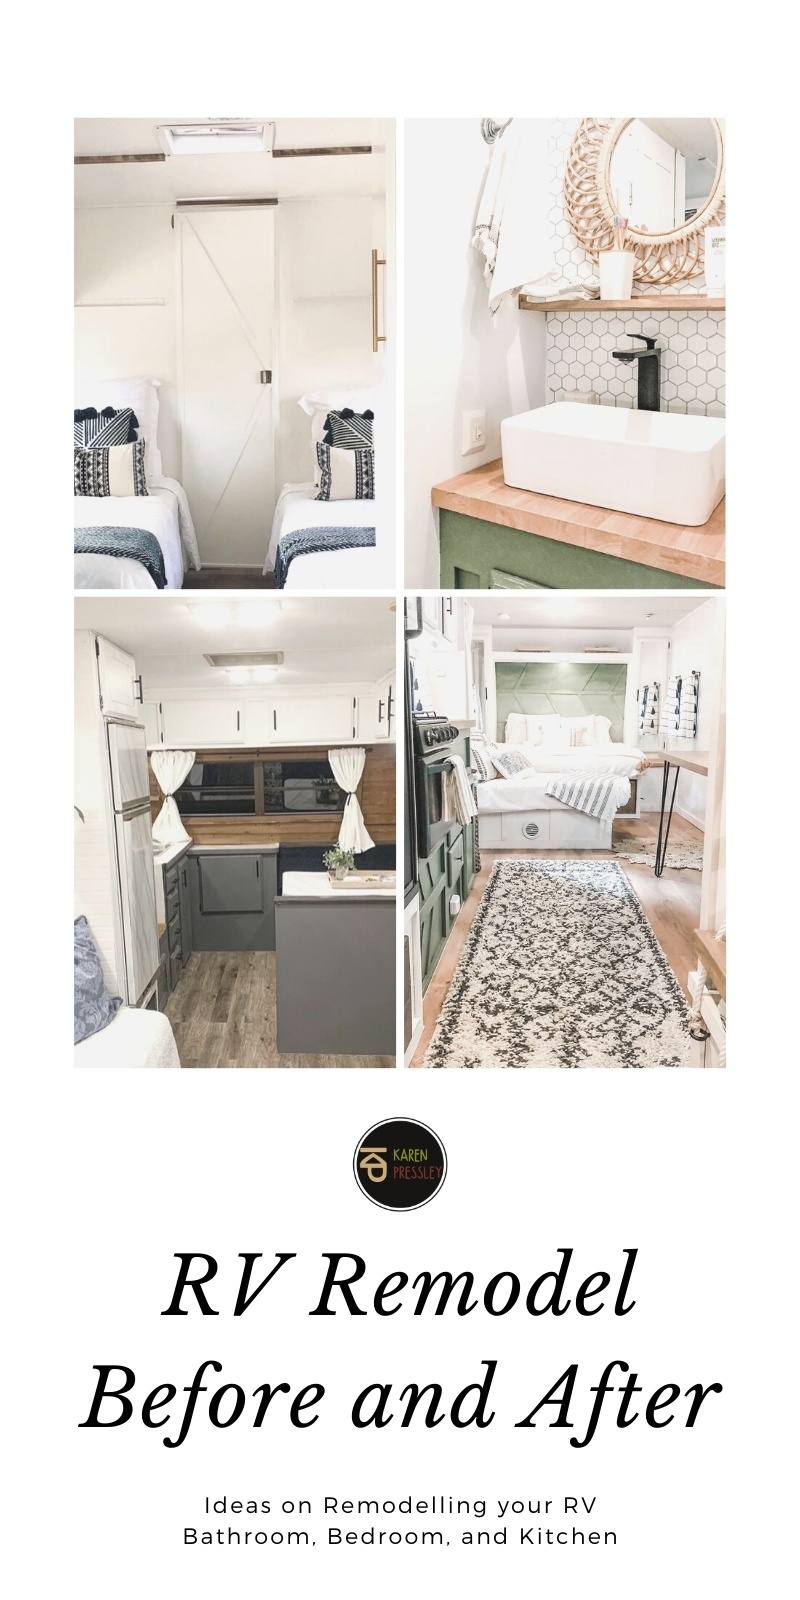 RV Remodel Before and After (Remodelling RV Bathroom, Bedroom, and Kitchen)